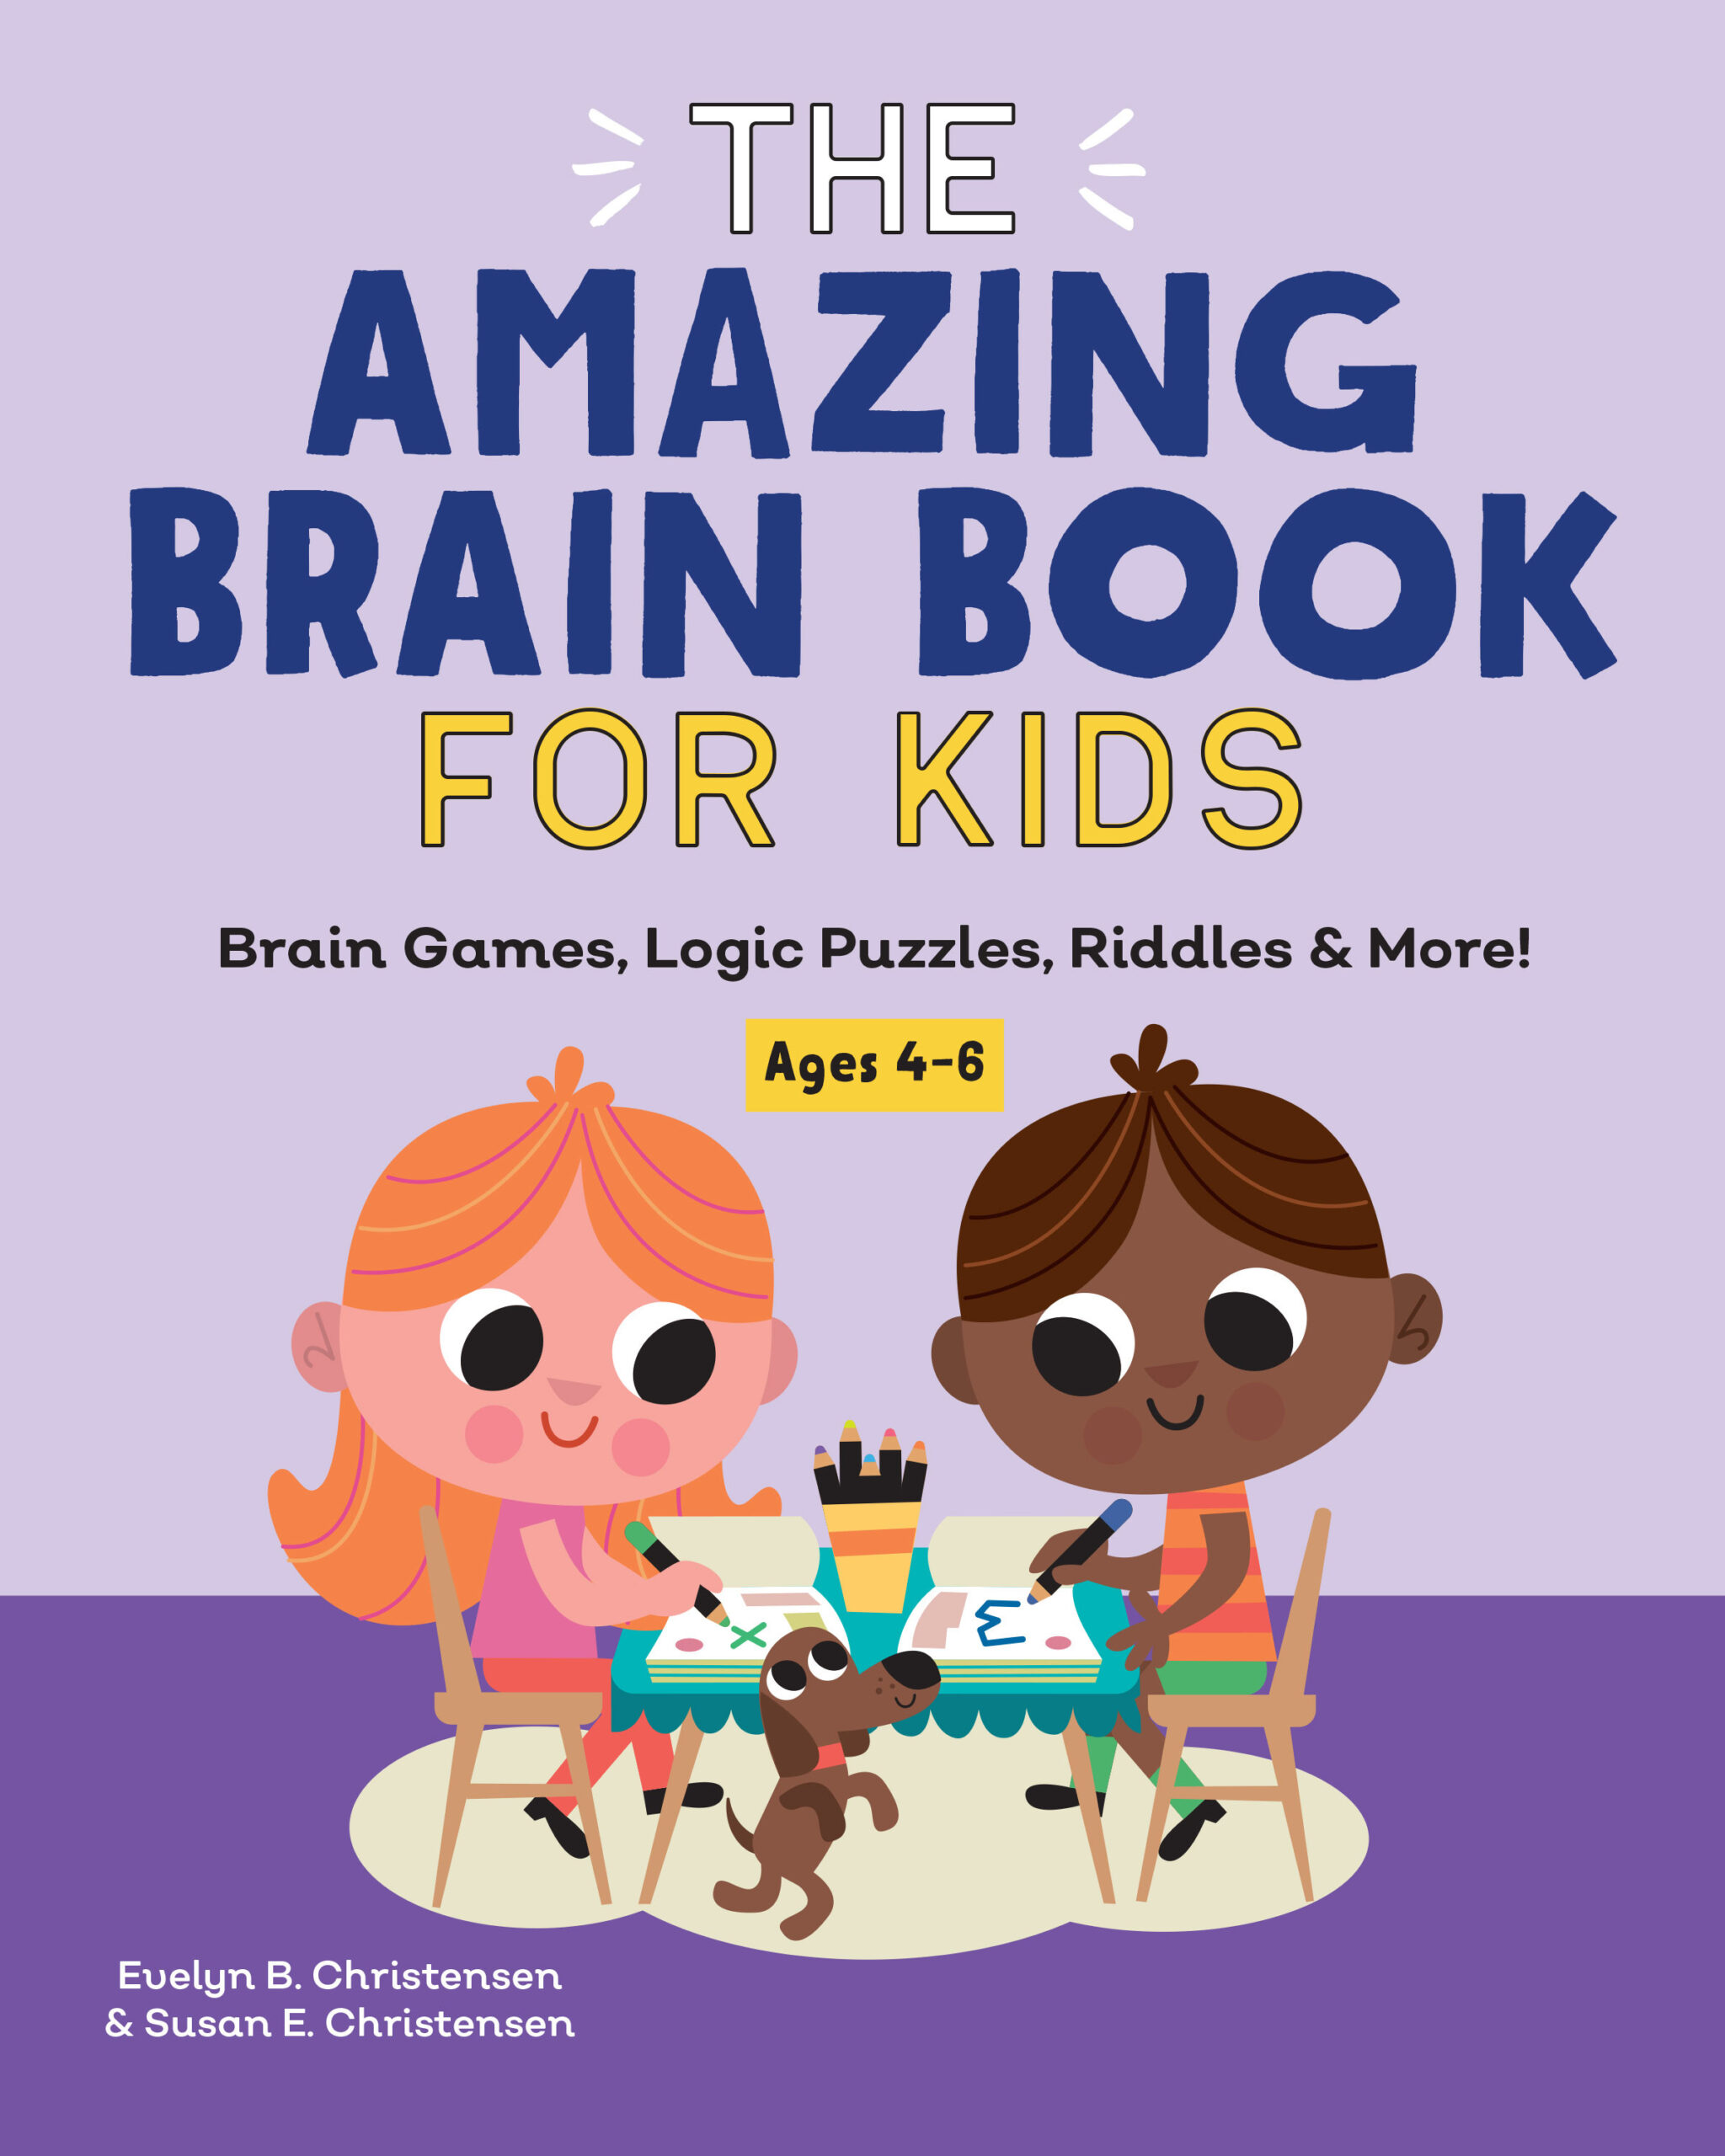 The Amazing Brain Book for Kids